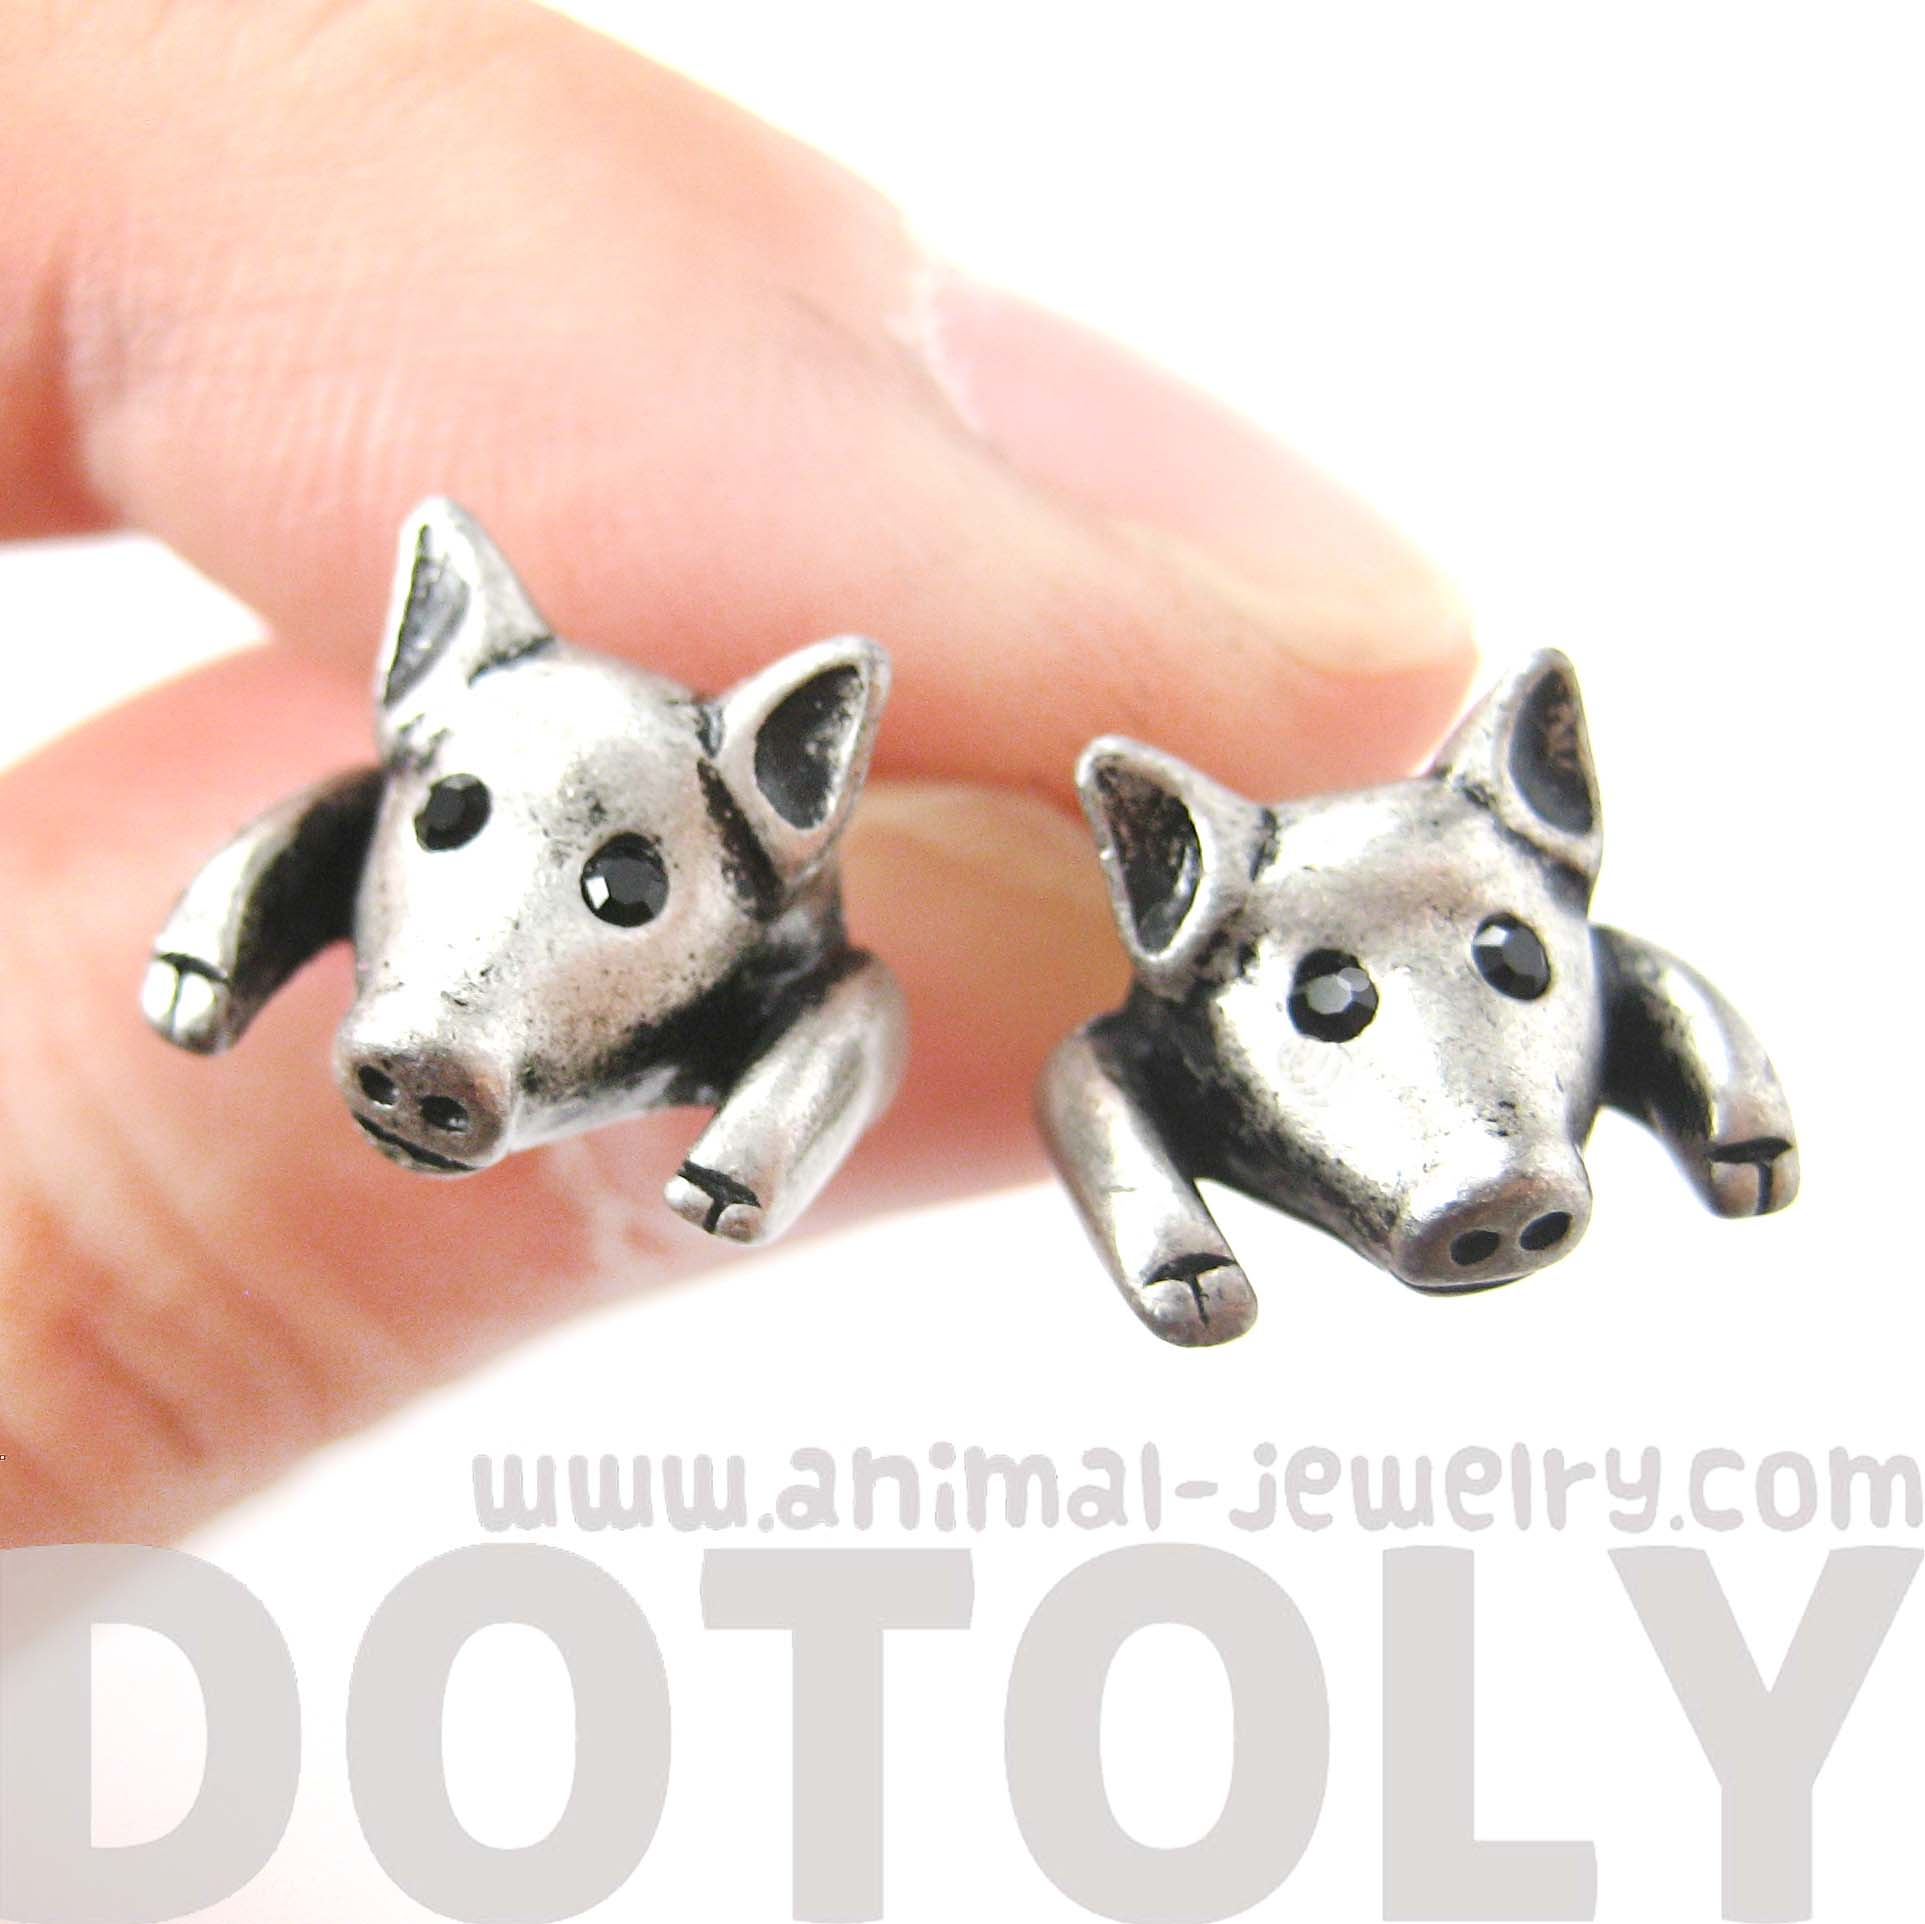 piglet-pig-realistic-animal-stud-earrings-in-silver-animal-jewelry